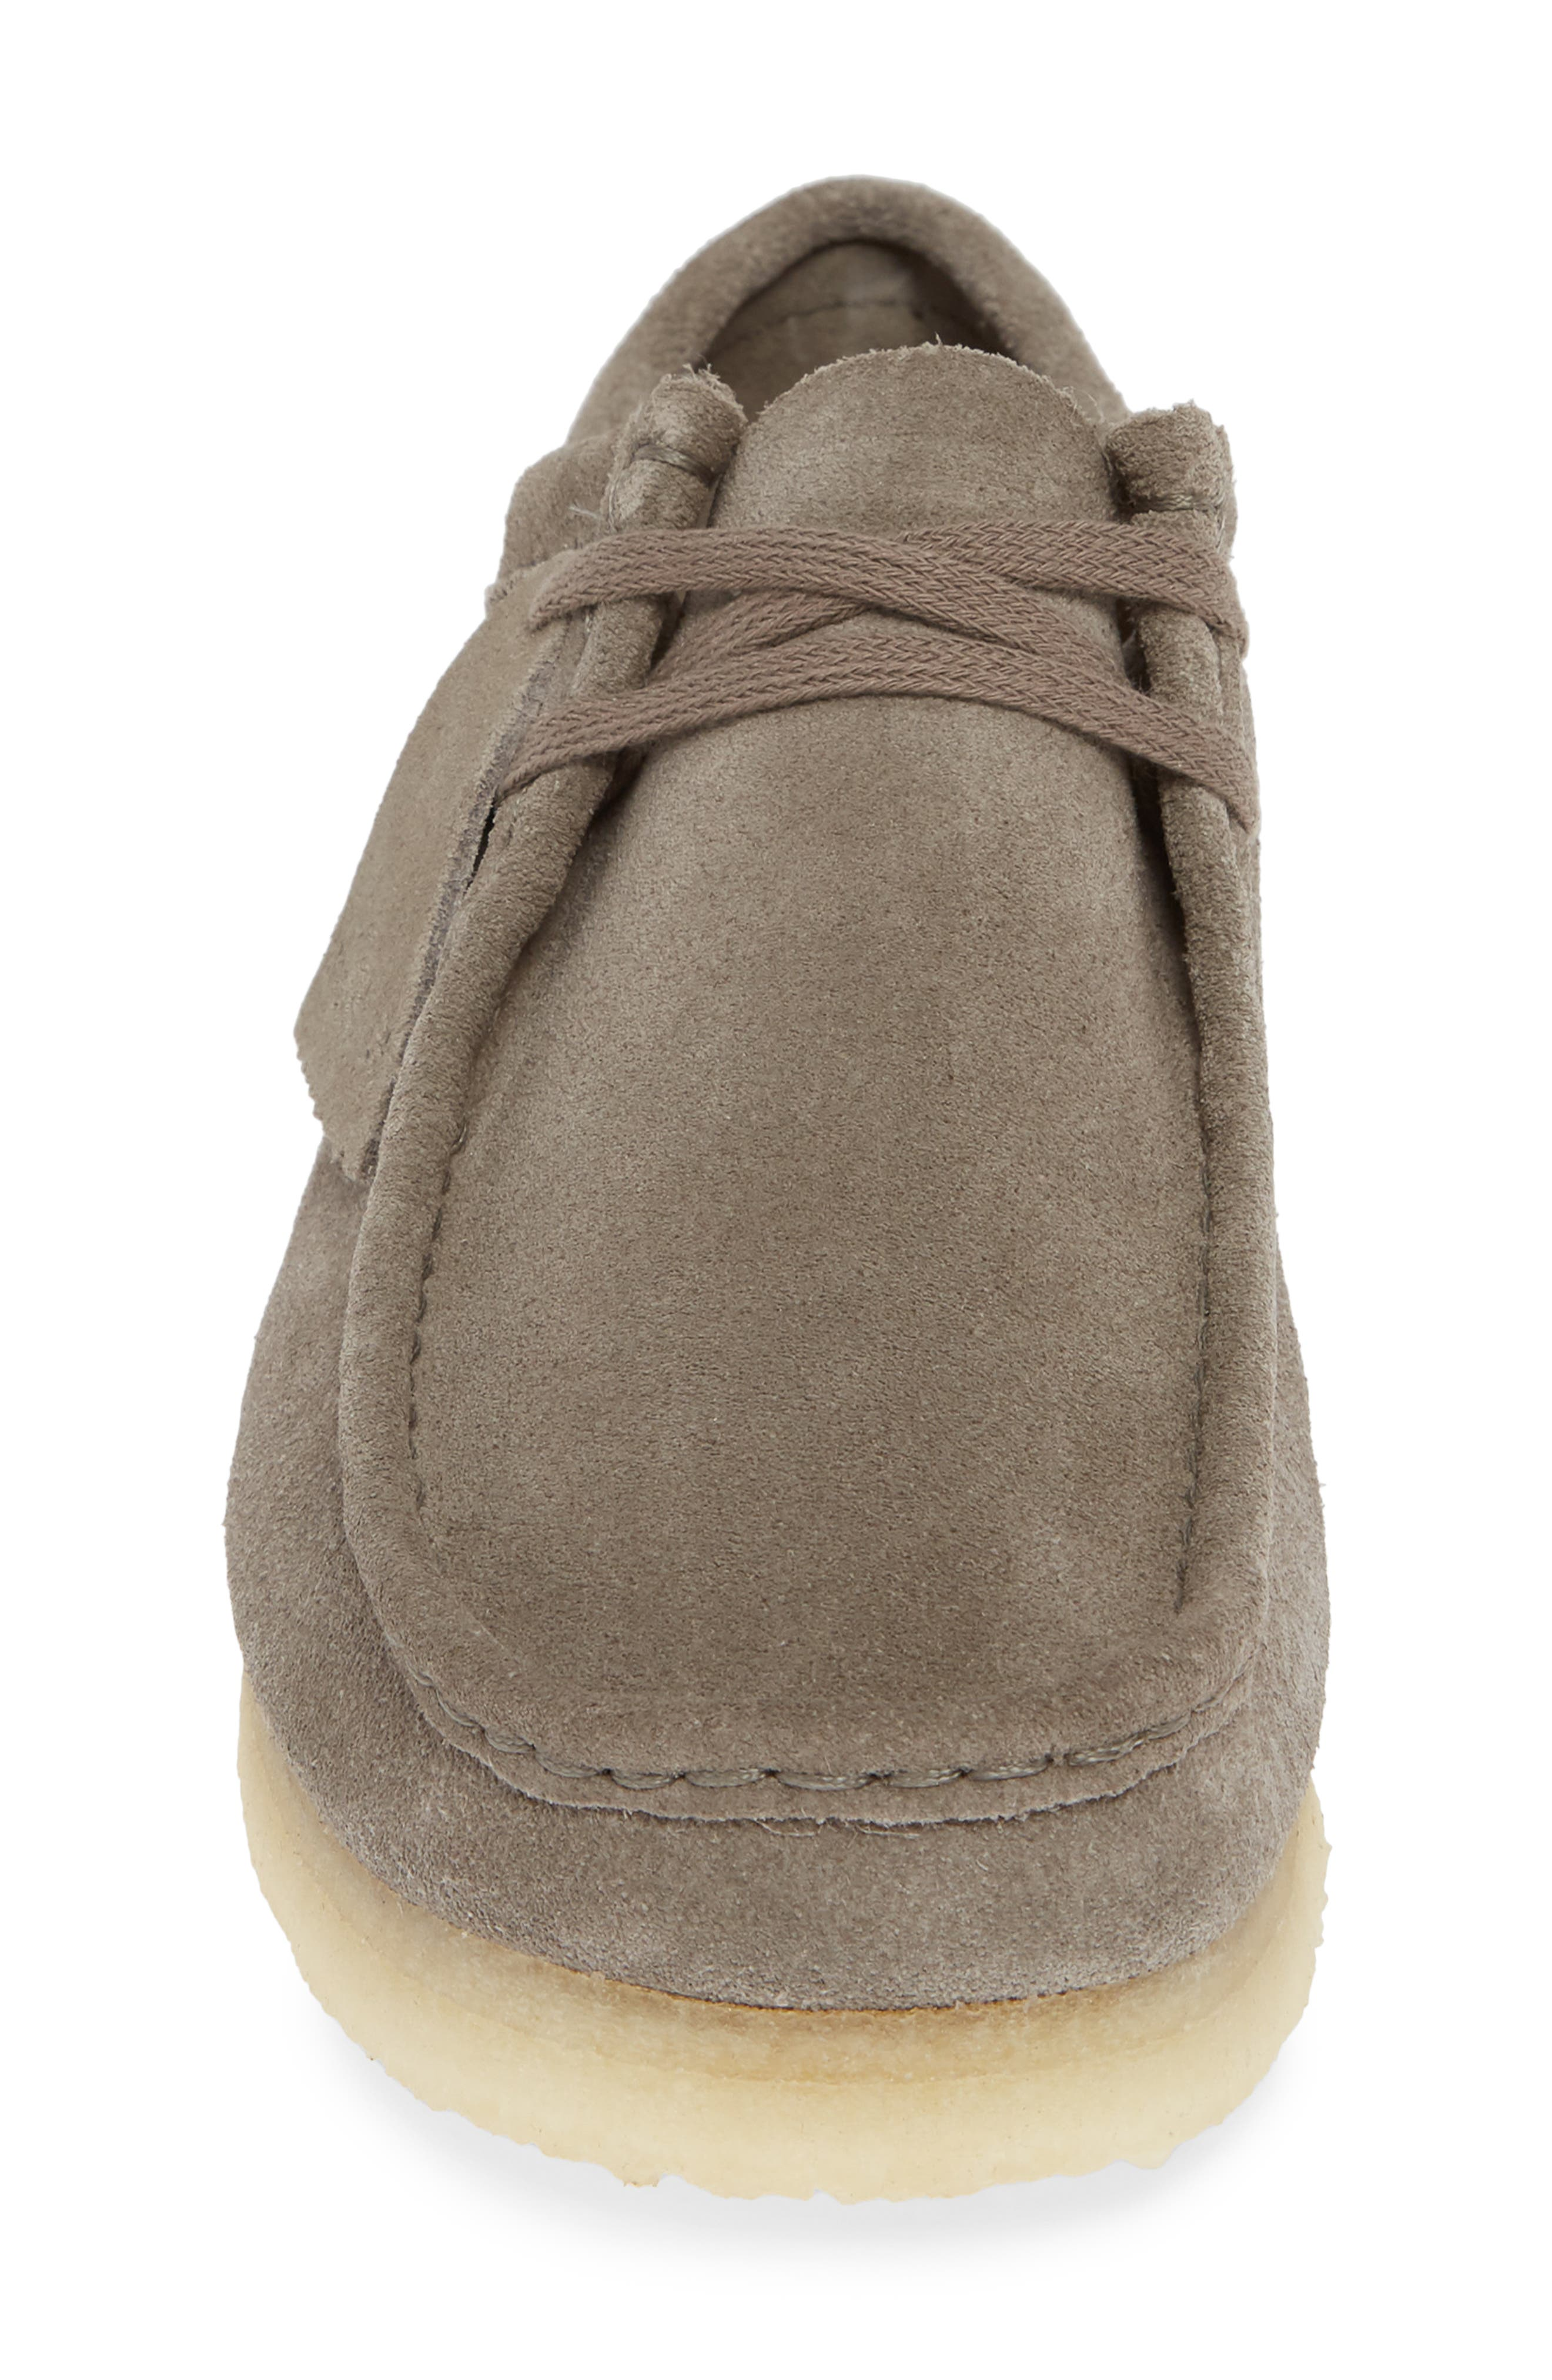 'Wallabee' Moc Toe Derby,                             Alternate thumbnail 4, color,                             GREY LEATHER